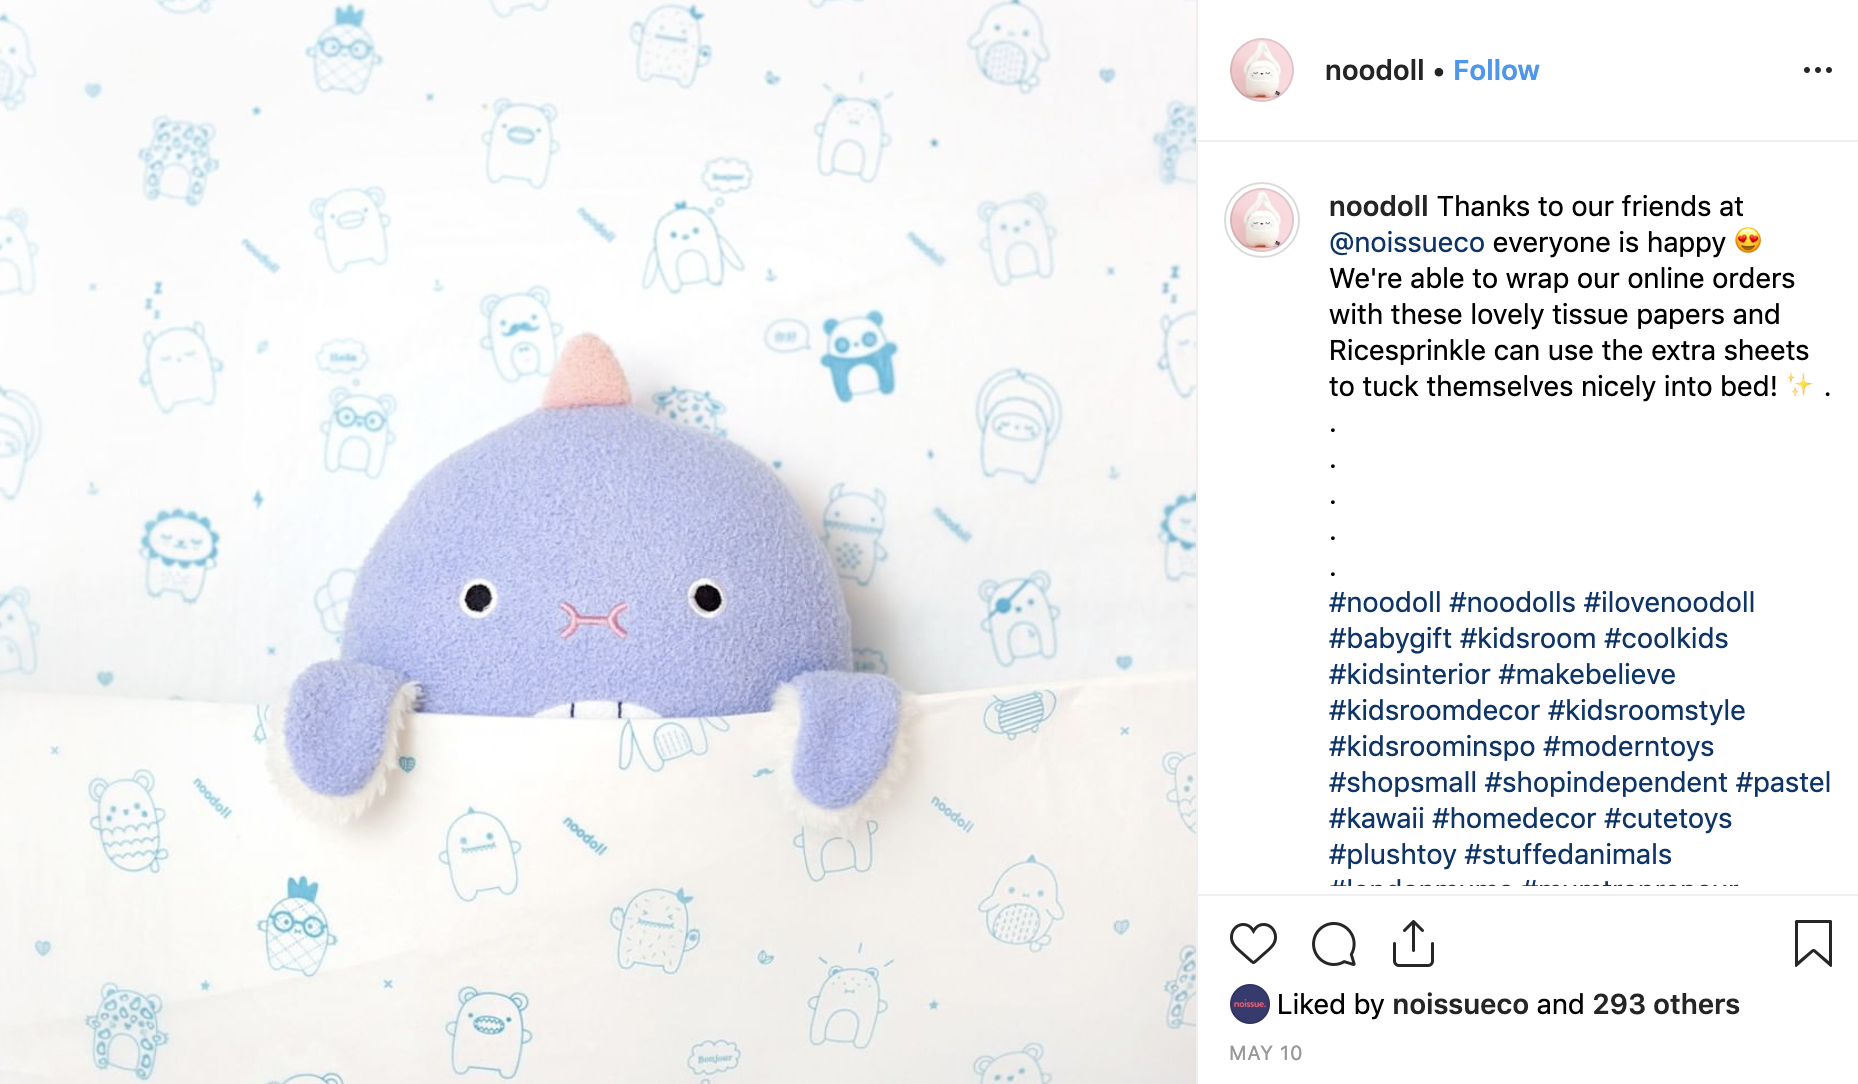 Noodoll toy tucked up in custom tissue paper like blankets